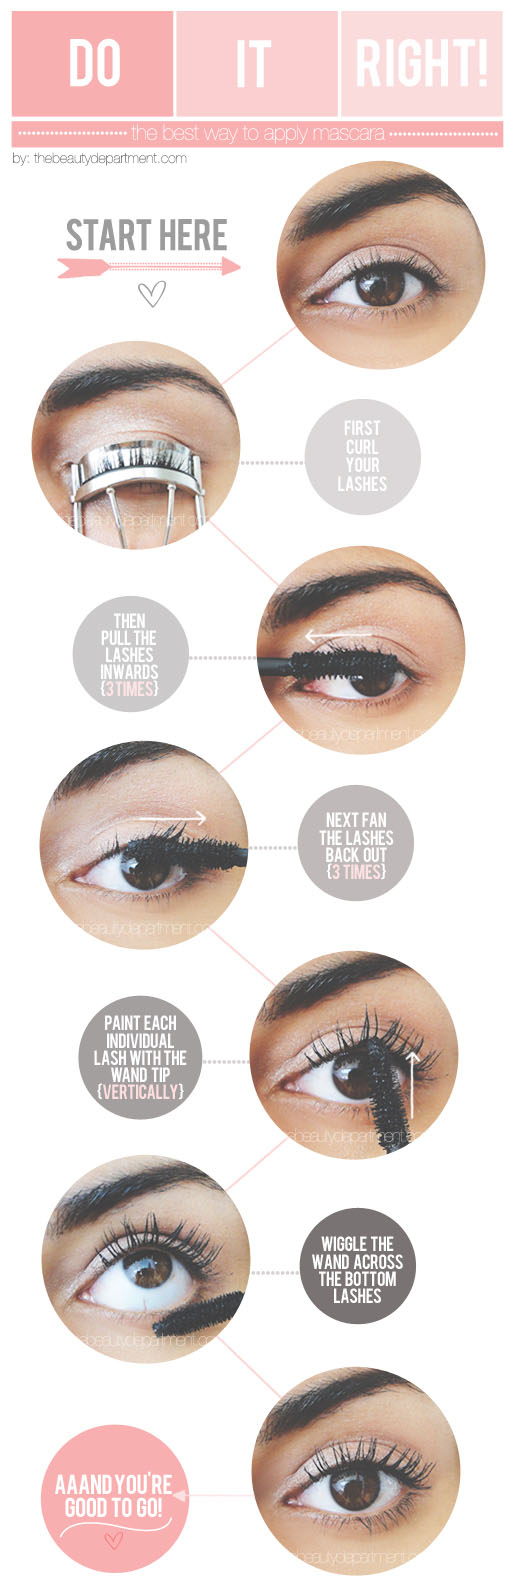 HOW TO GET THE MOST FROM MASCARA